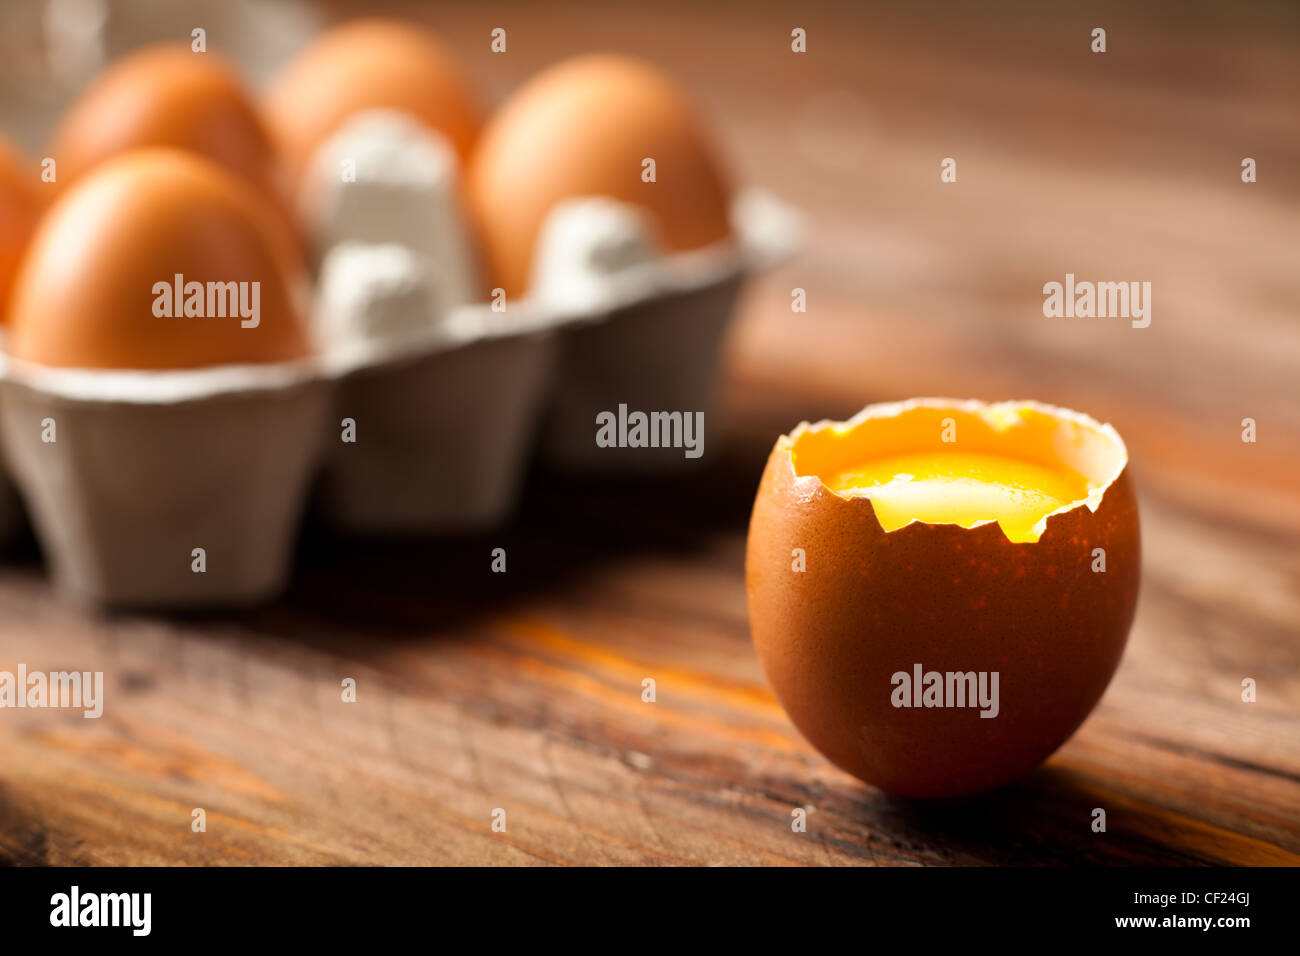 Opened Egg Shell with Yolk on Wood - Stock Image